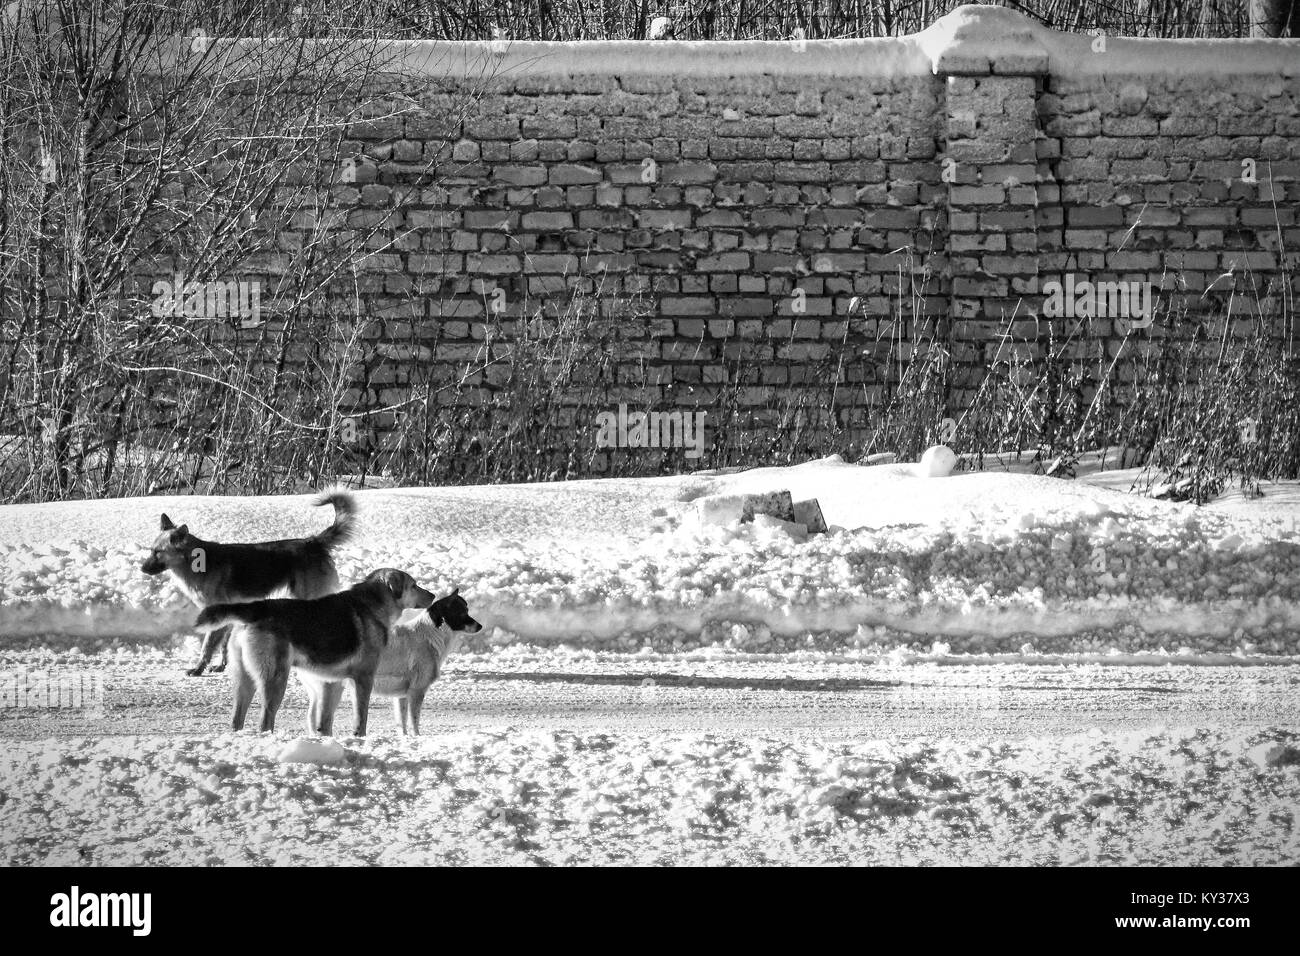 Stray dogs on the winter road. Behind the road is a brick wall. Black and white photo Stock Photo